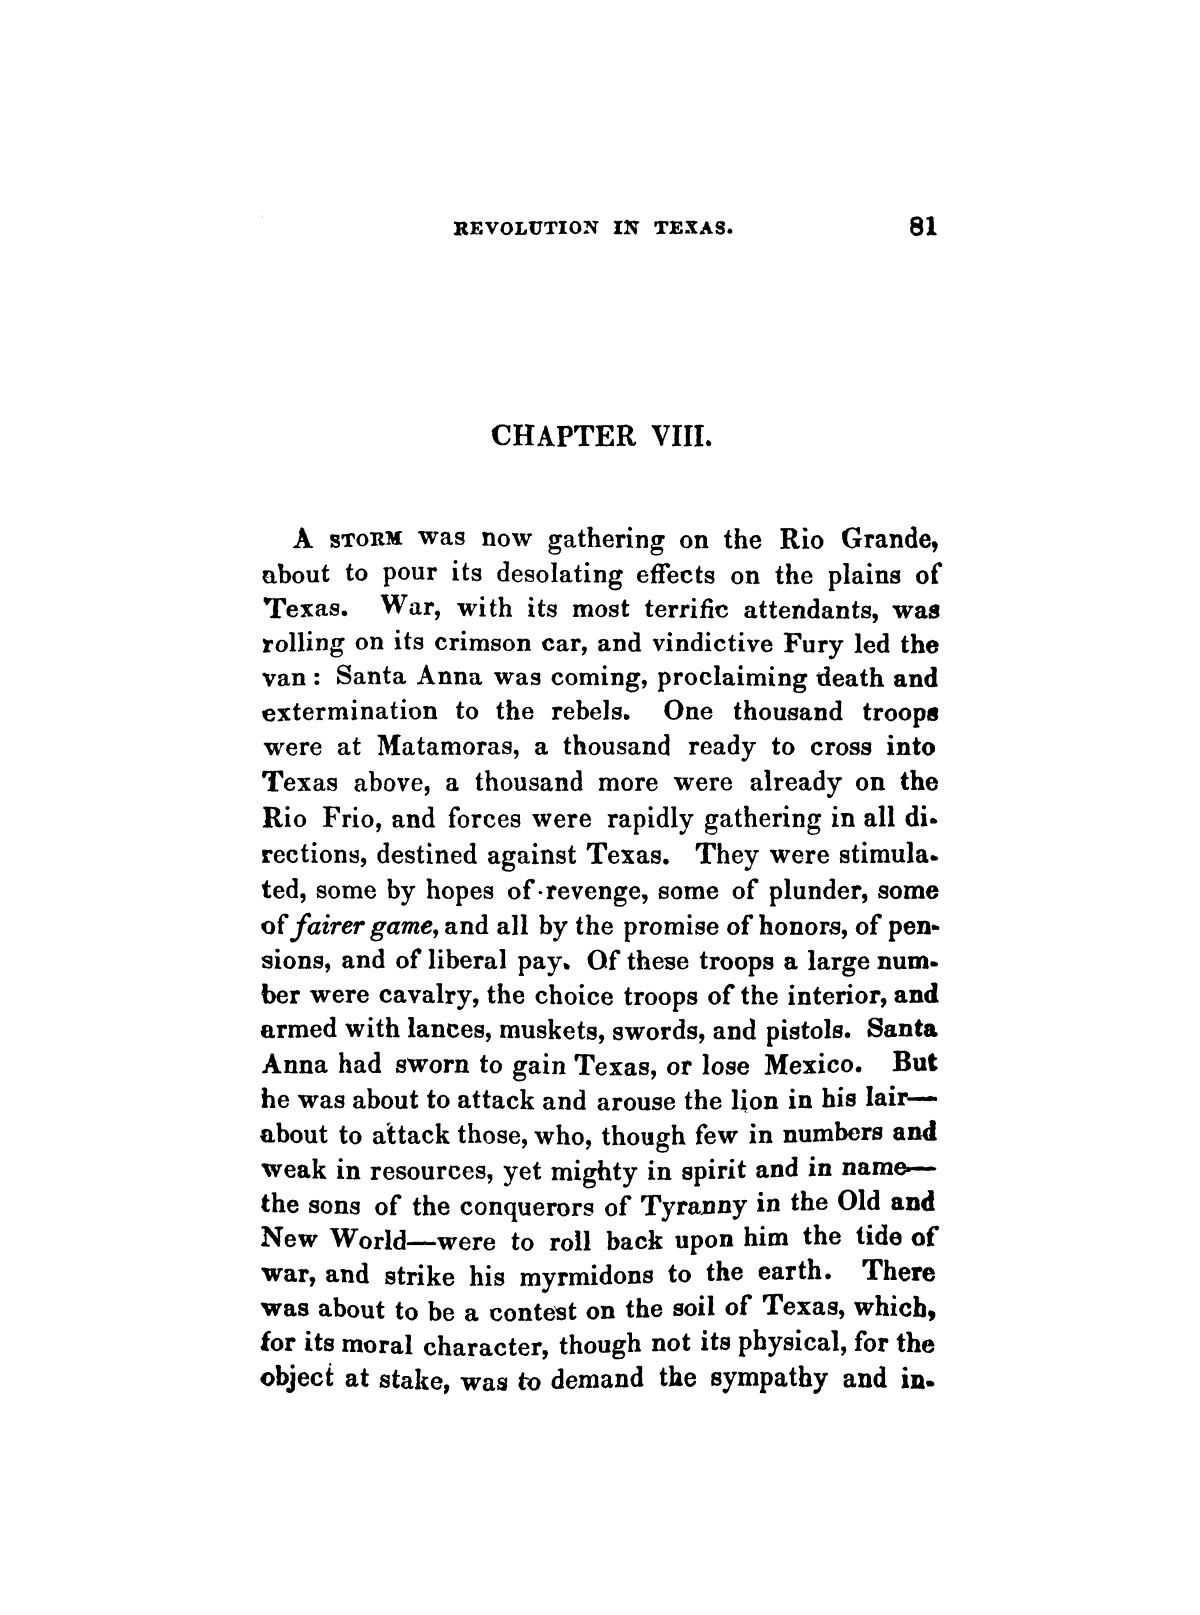 History of the revolution in Texas, particularly of the war of 1835 & '36; together with the latest geographical, topographical, and statistical accounts of the country, from the most authentic sources. Also, an appendix. By the Rev. C. Newell.                                                                                                      [Sequence #]: 93 of 227